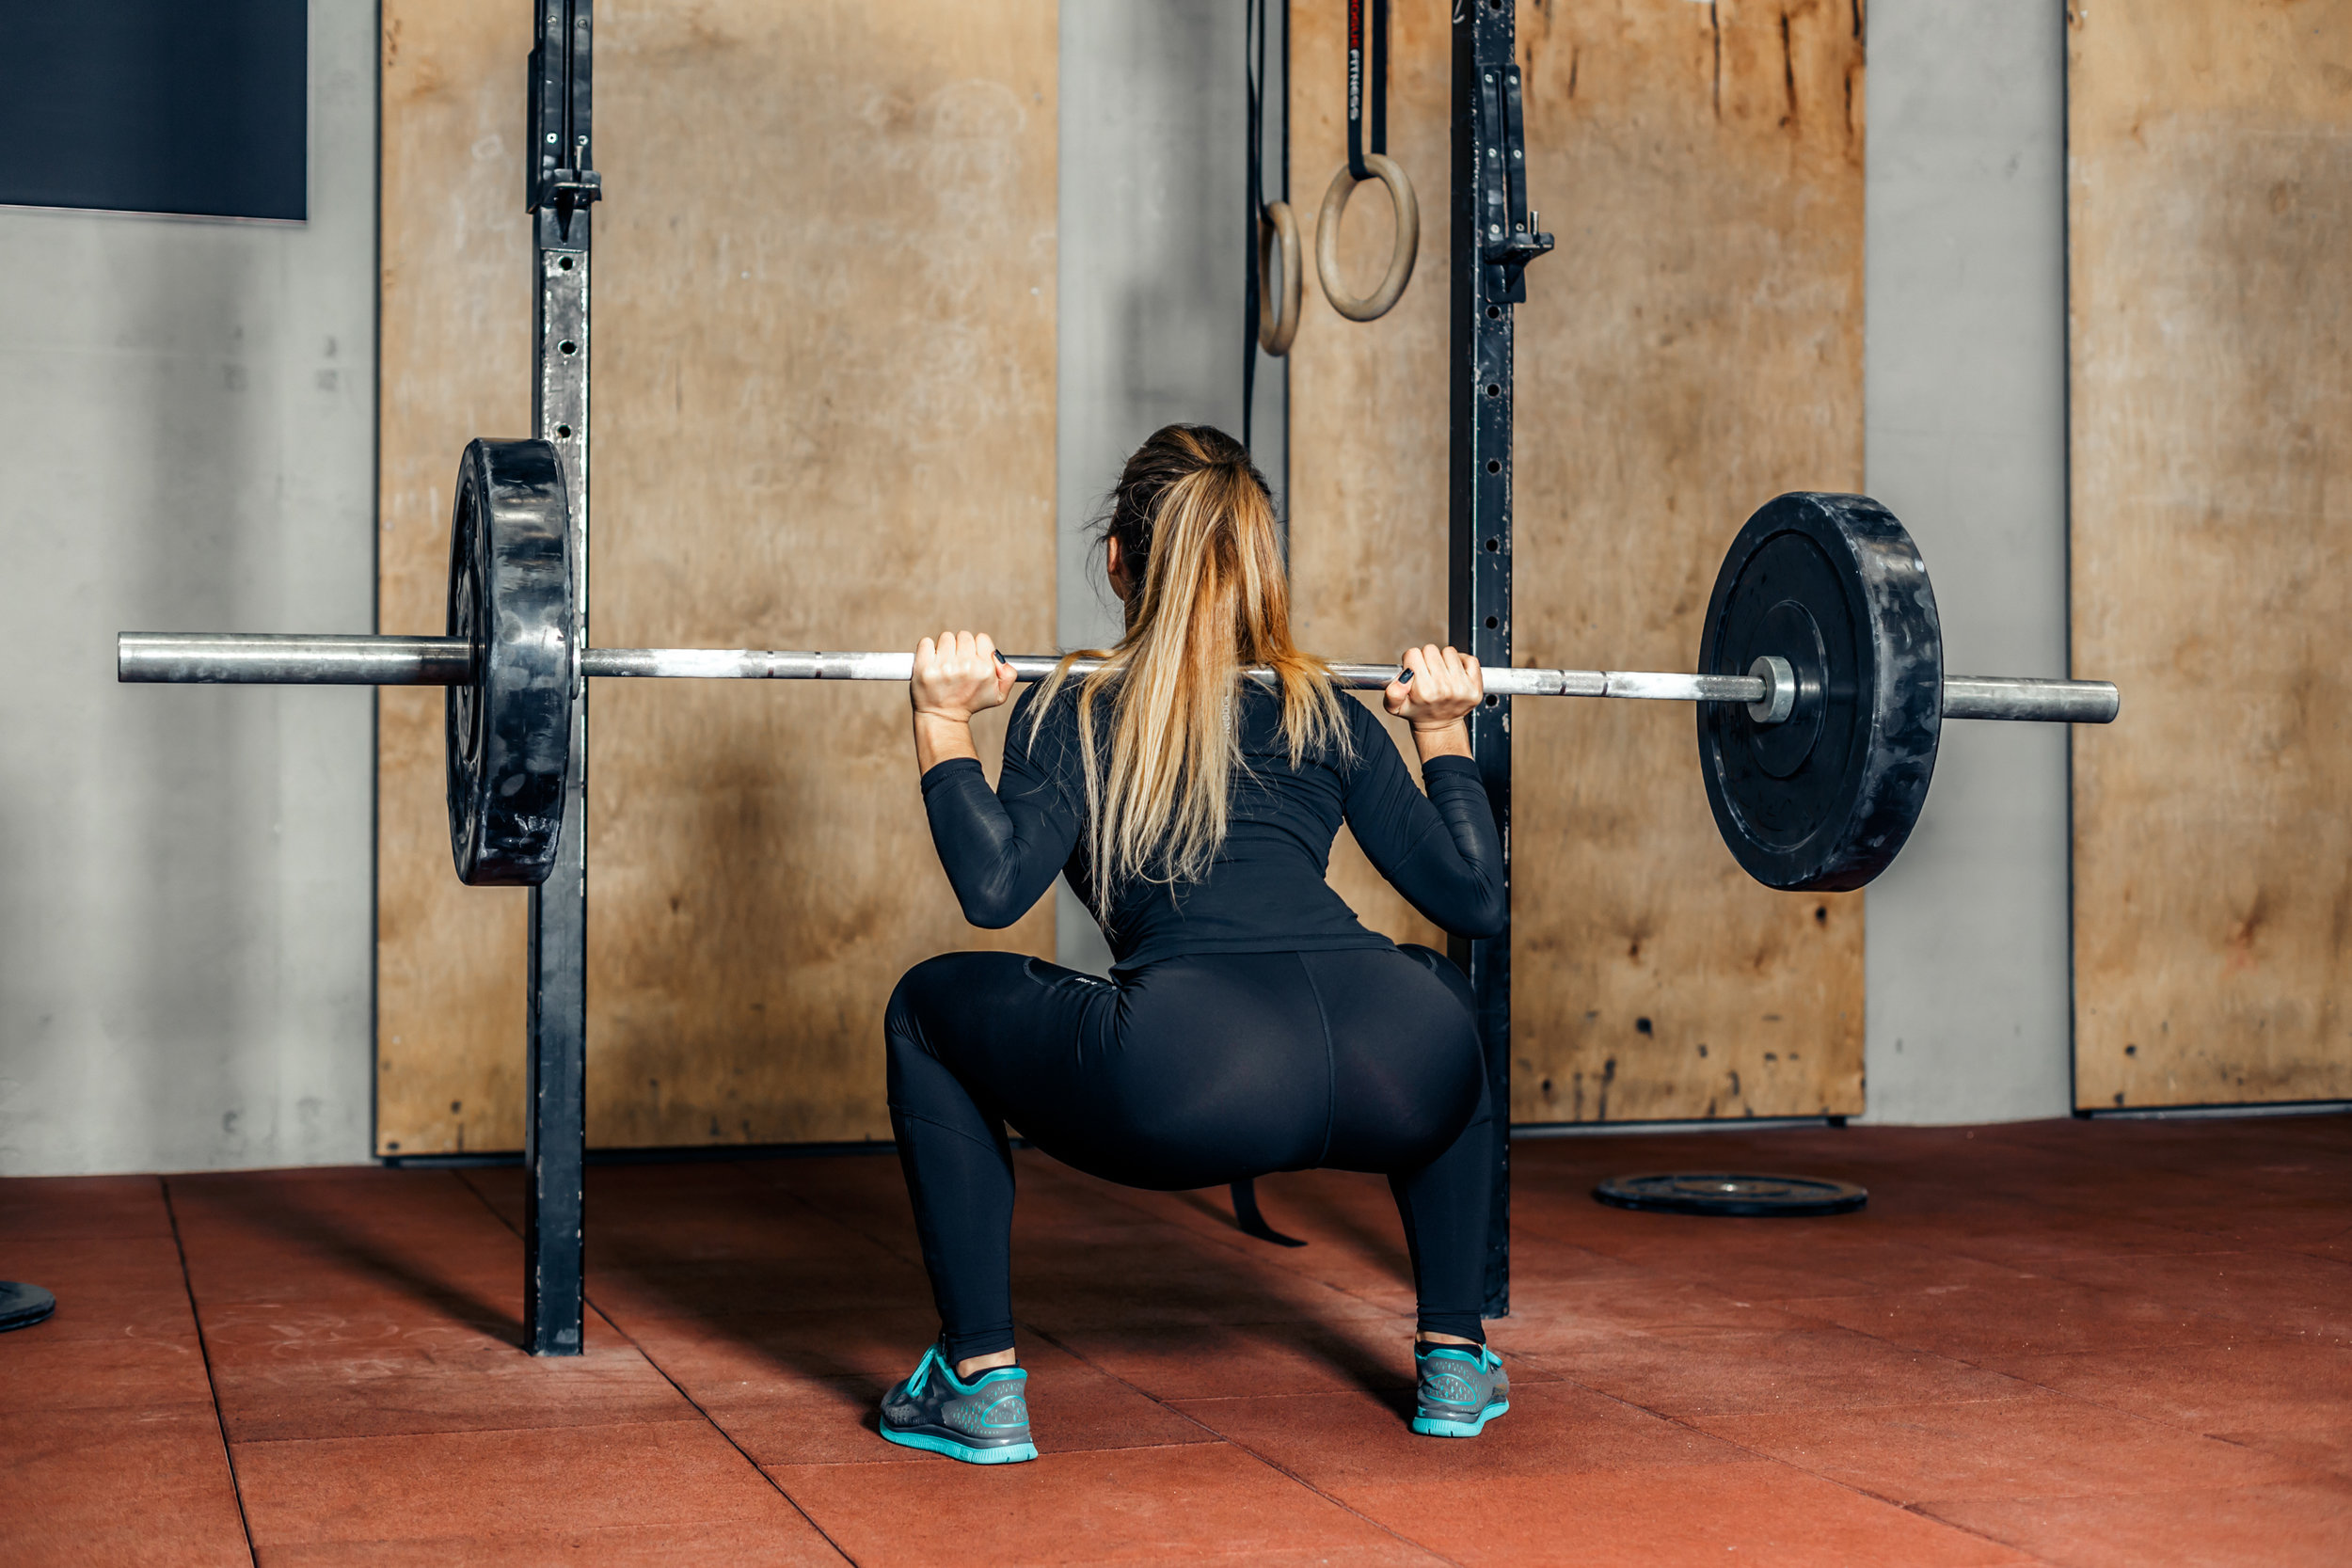 The Back Squat can be a challenge for someone with poor mobility and lack of extension in the thoracic spine. This makes it difficult to get the hands back behind the shoulder line, and in doing so can force excessive extension into the lumbar spine, creating a forward tilt of the pelvis.